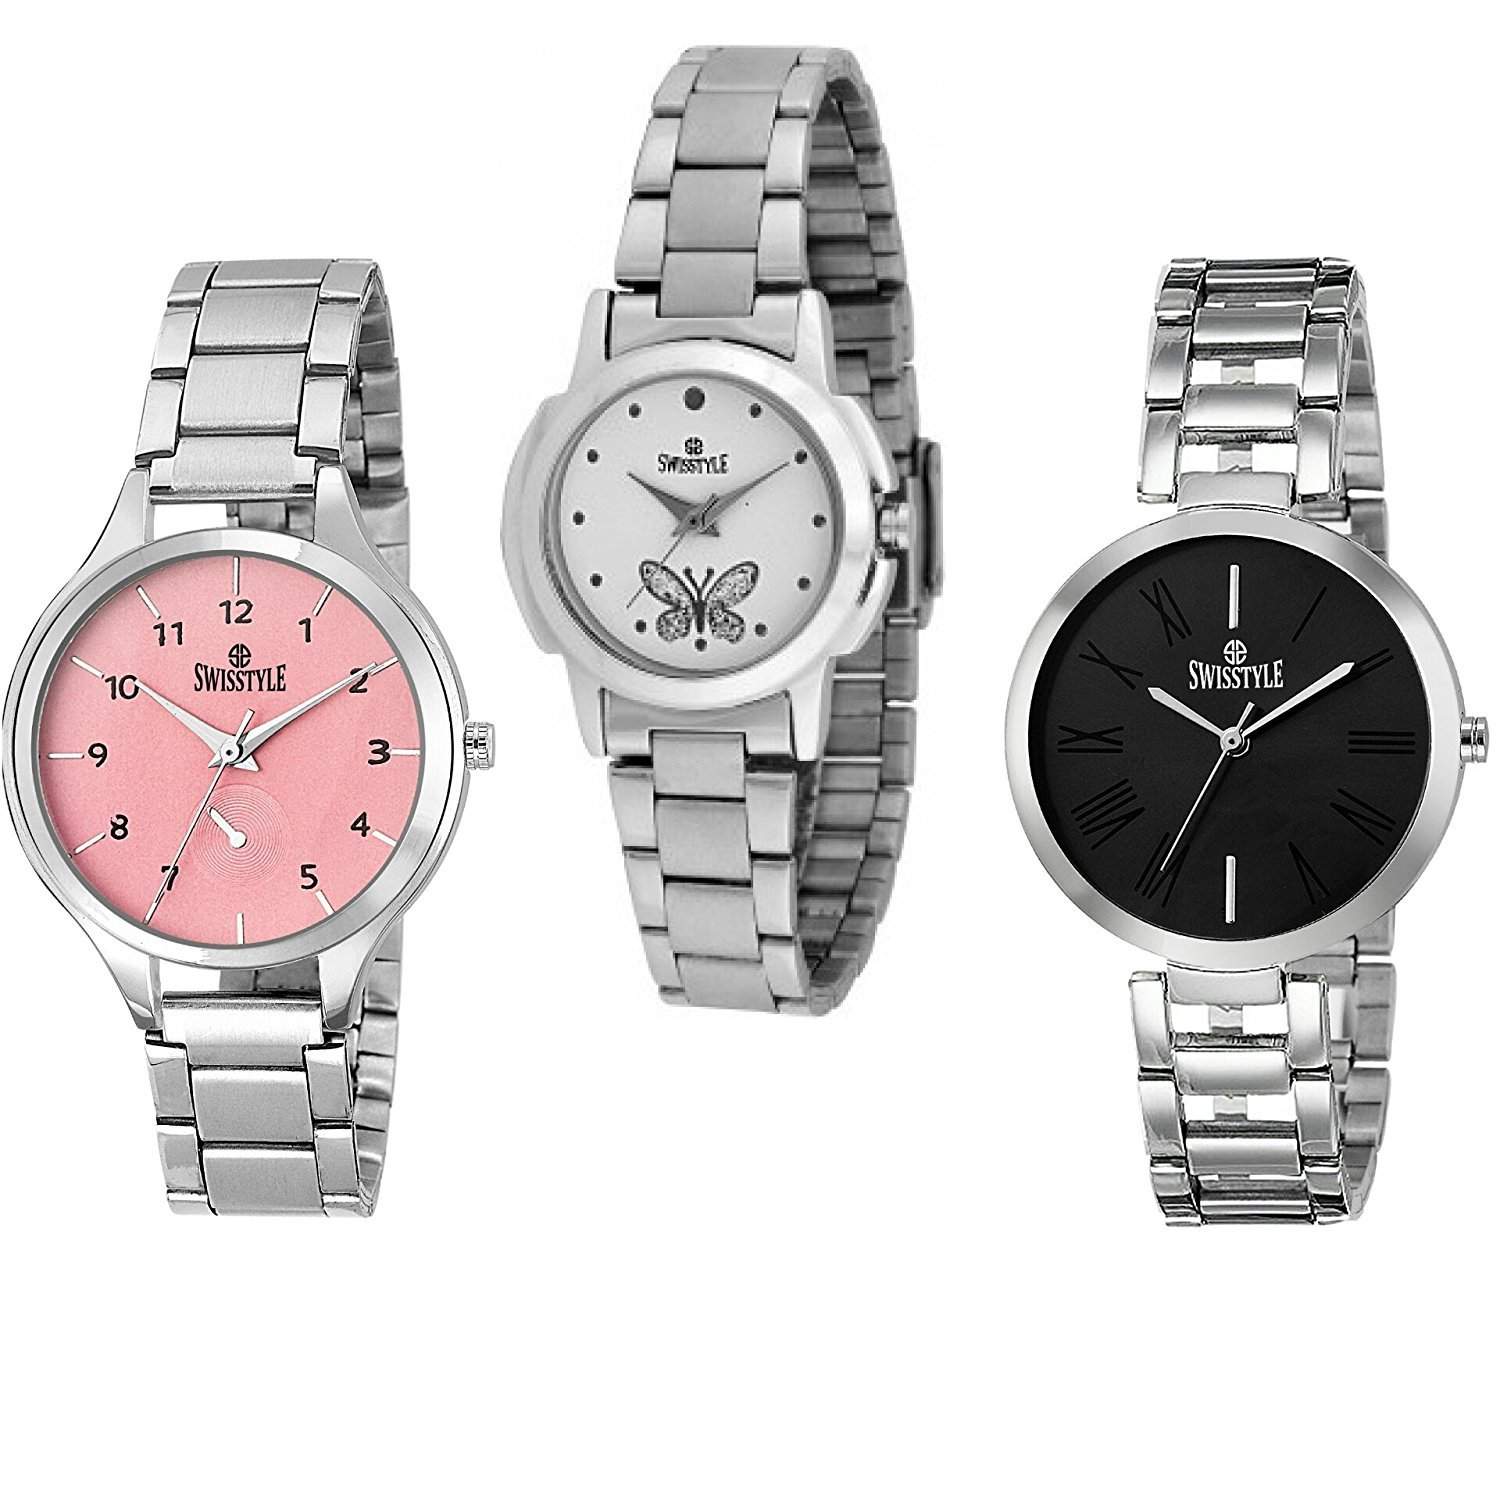 SWISSTYLE Analogue Women's Watch (White, Black & Pink Dial Silver Colored Strap) (Pack of 3)